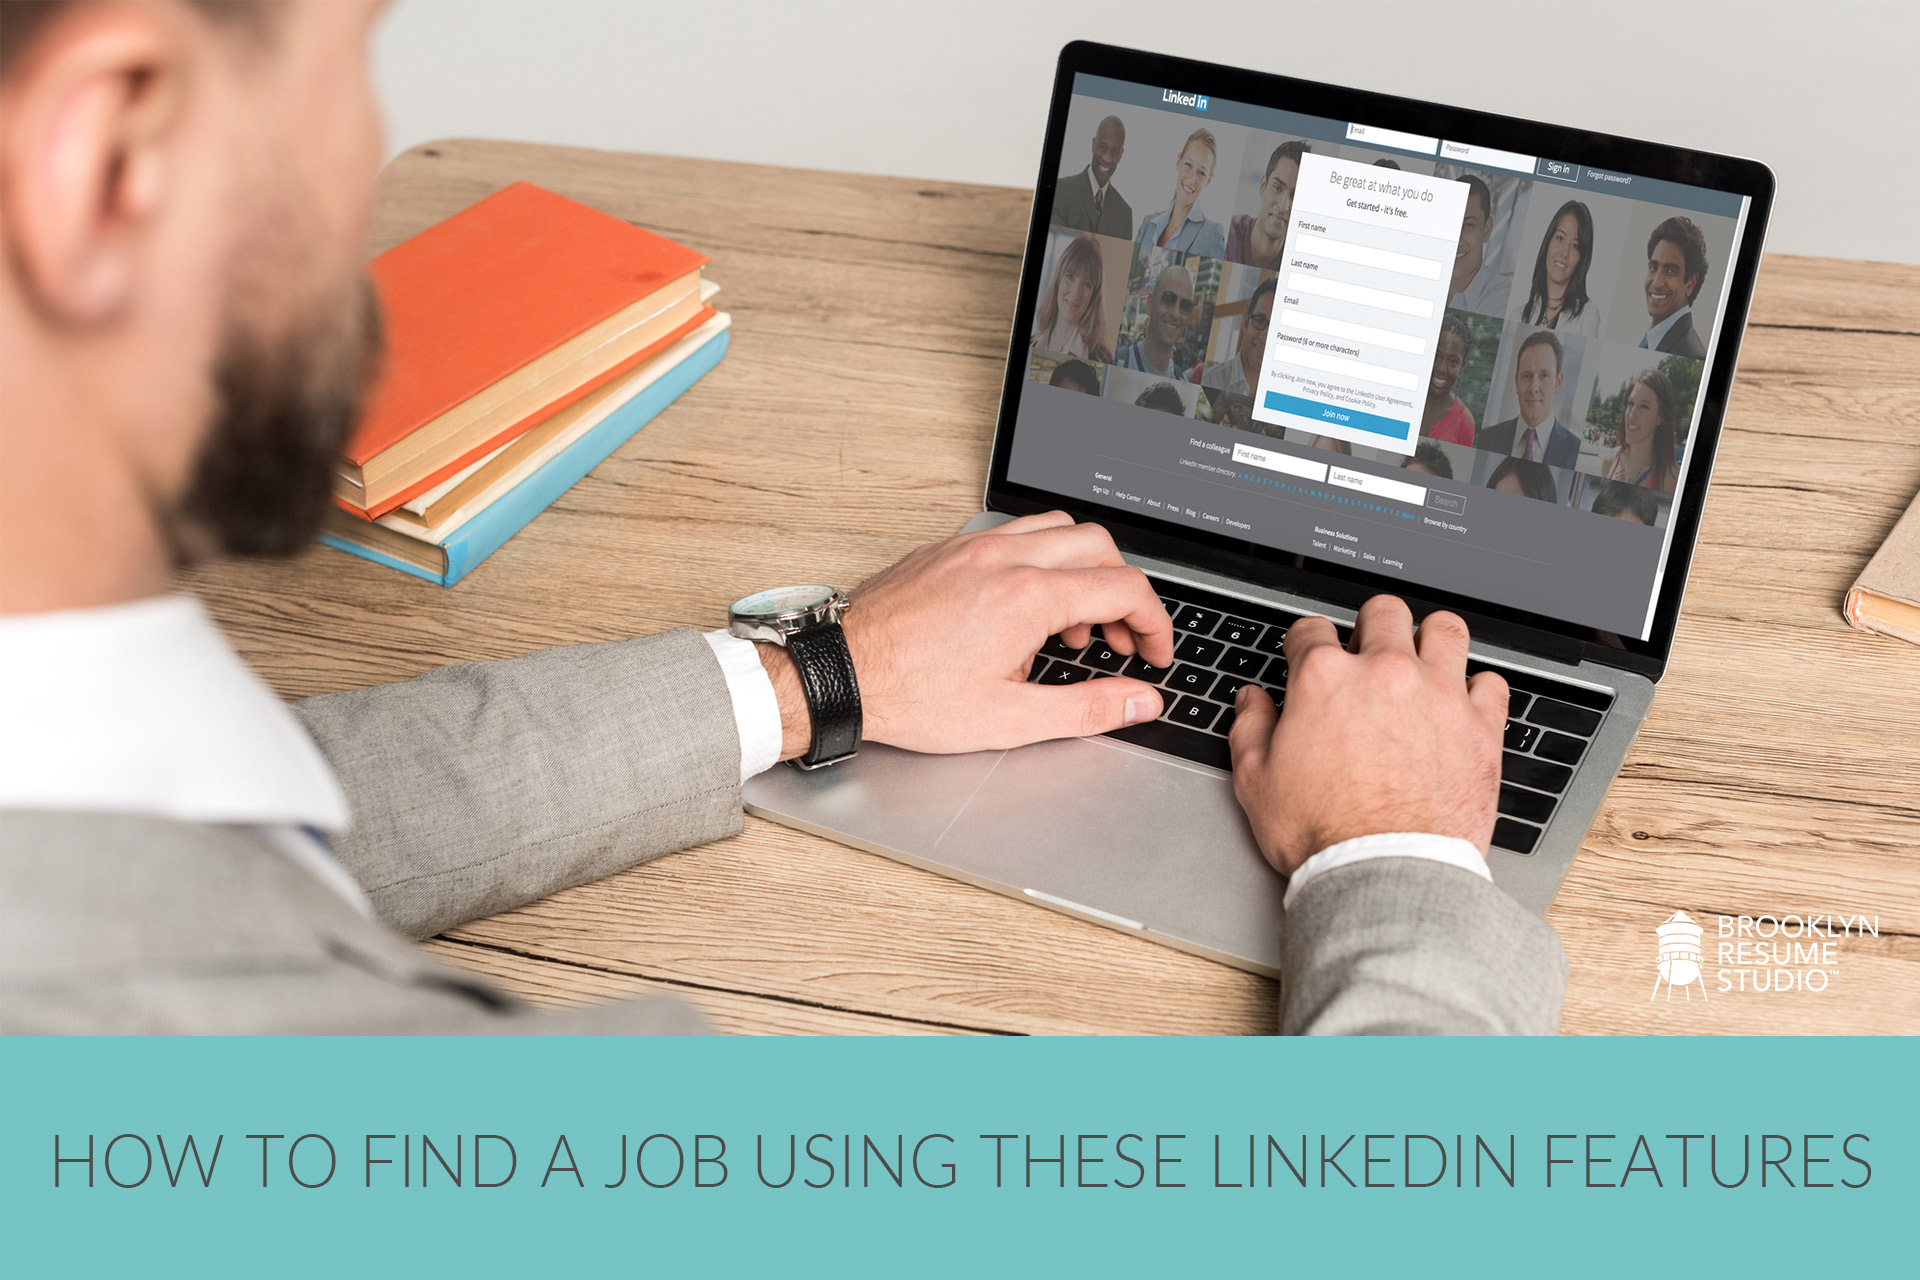 Job Seekers: How to Find a Job Using These LinkedIn Features